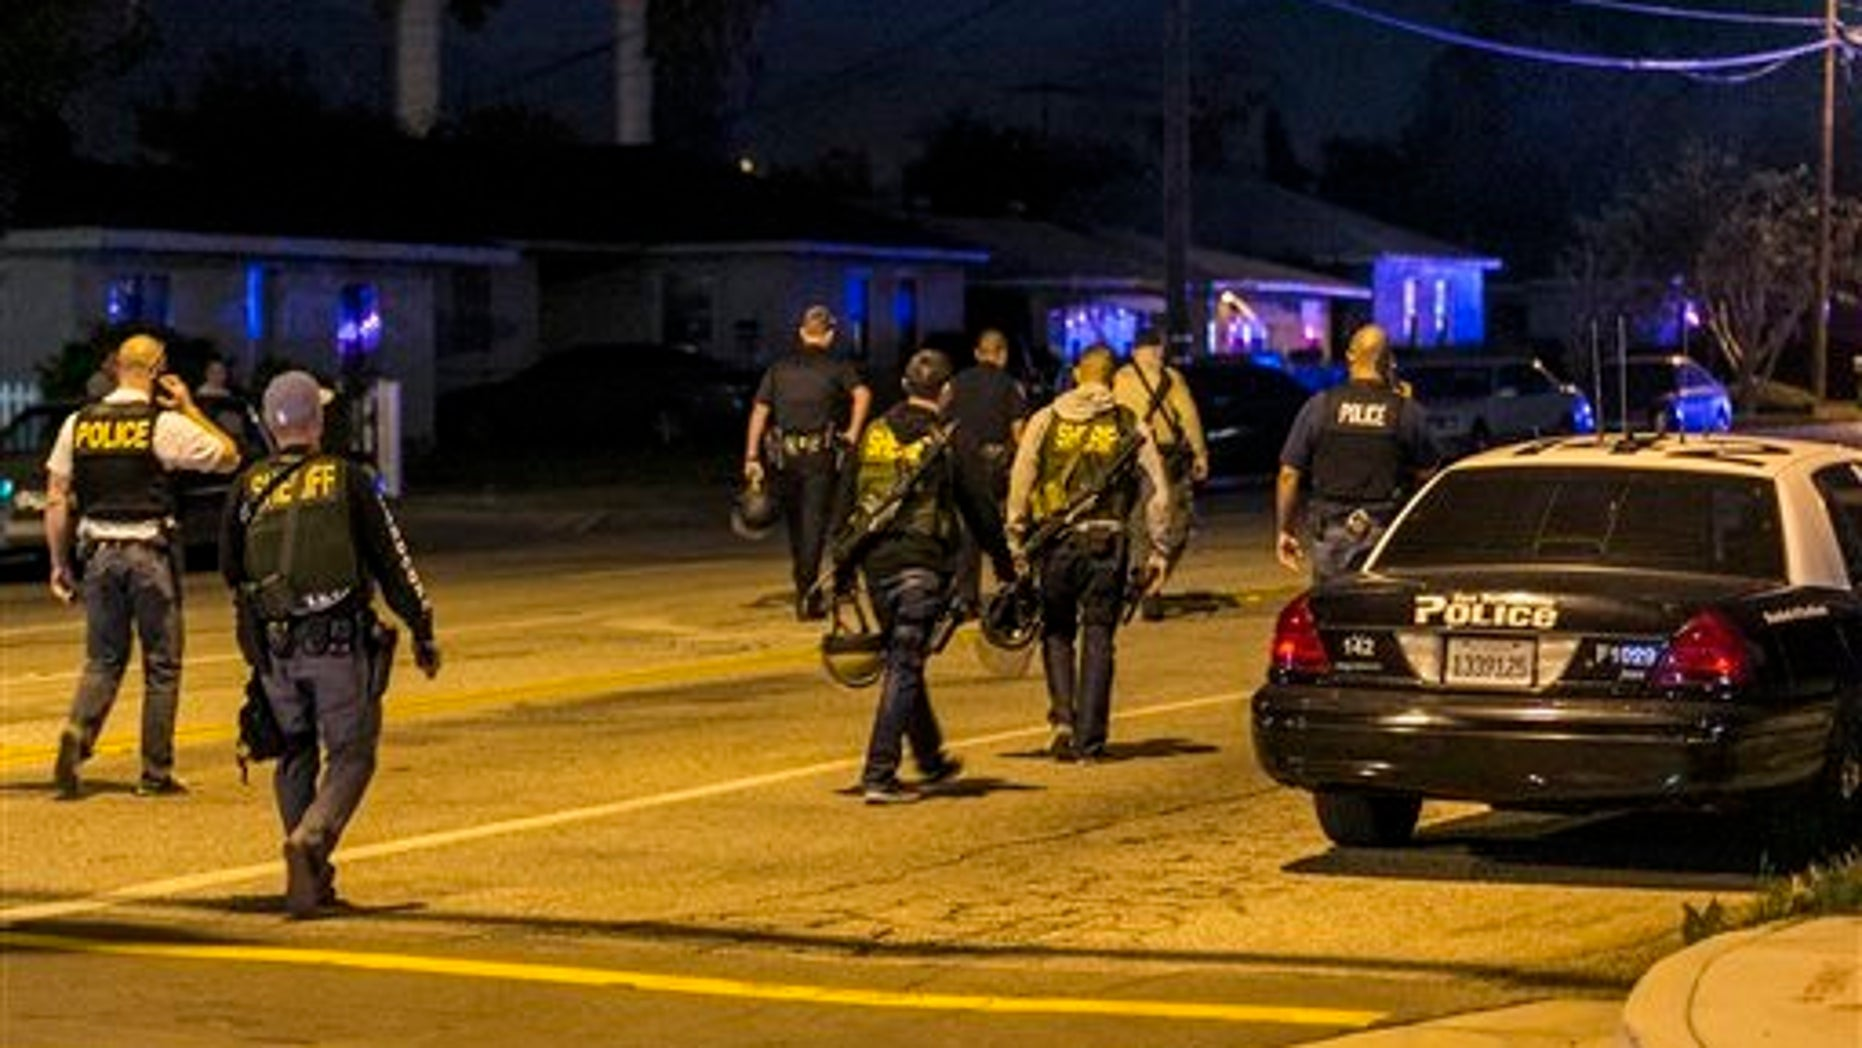 Authorities guard the perimeter near the location of an officer-involved shooting Wednesday, Dec. 2, 2015, in San Bernardino, Calif., following a shooting that killed multiple people at a social services center for the disabled. (AP Photo/Damian Dovarganes)